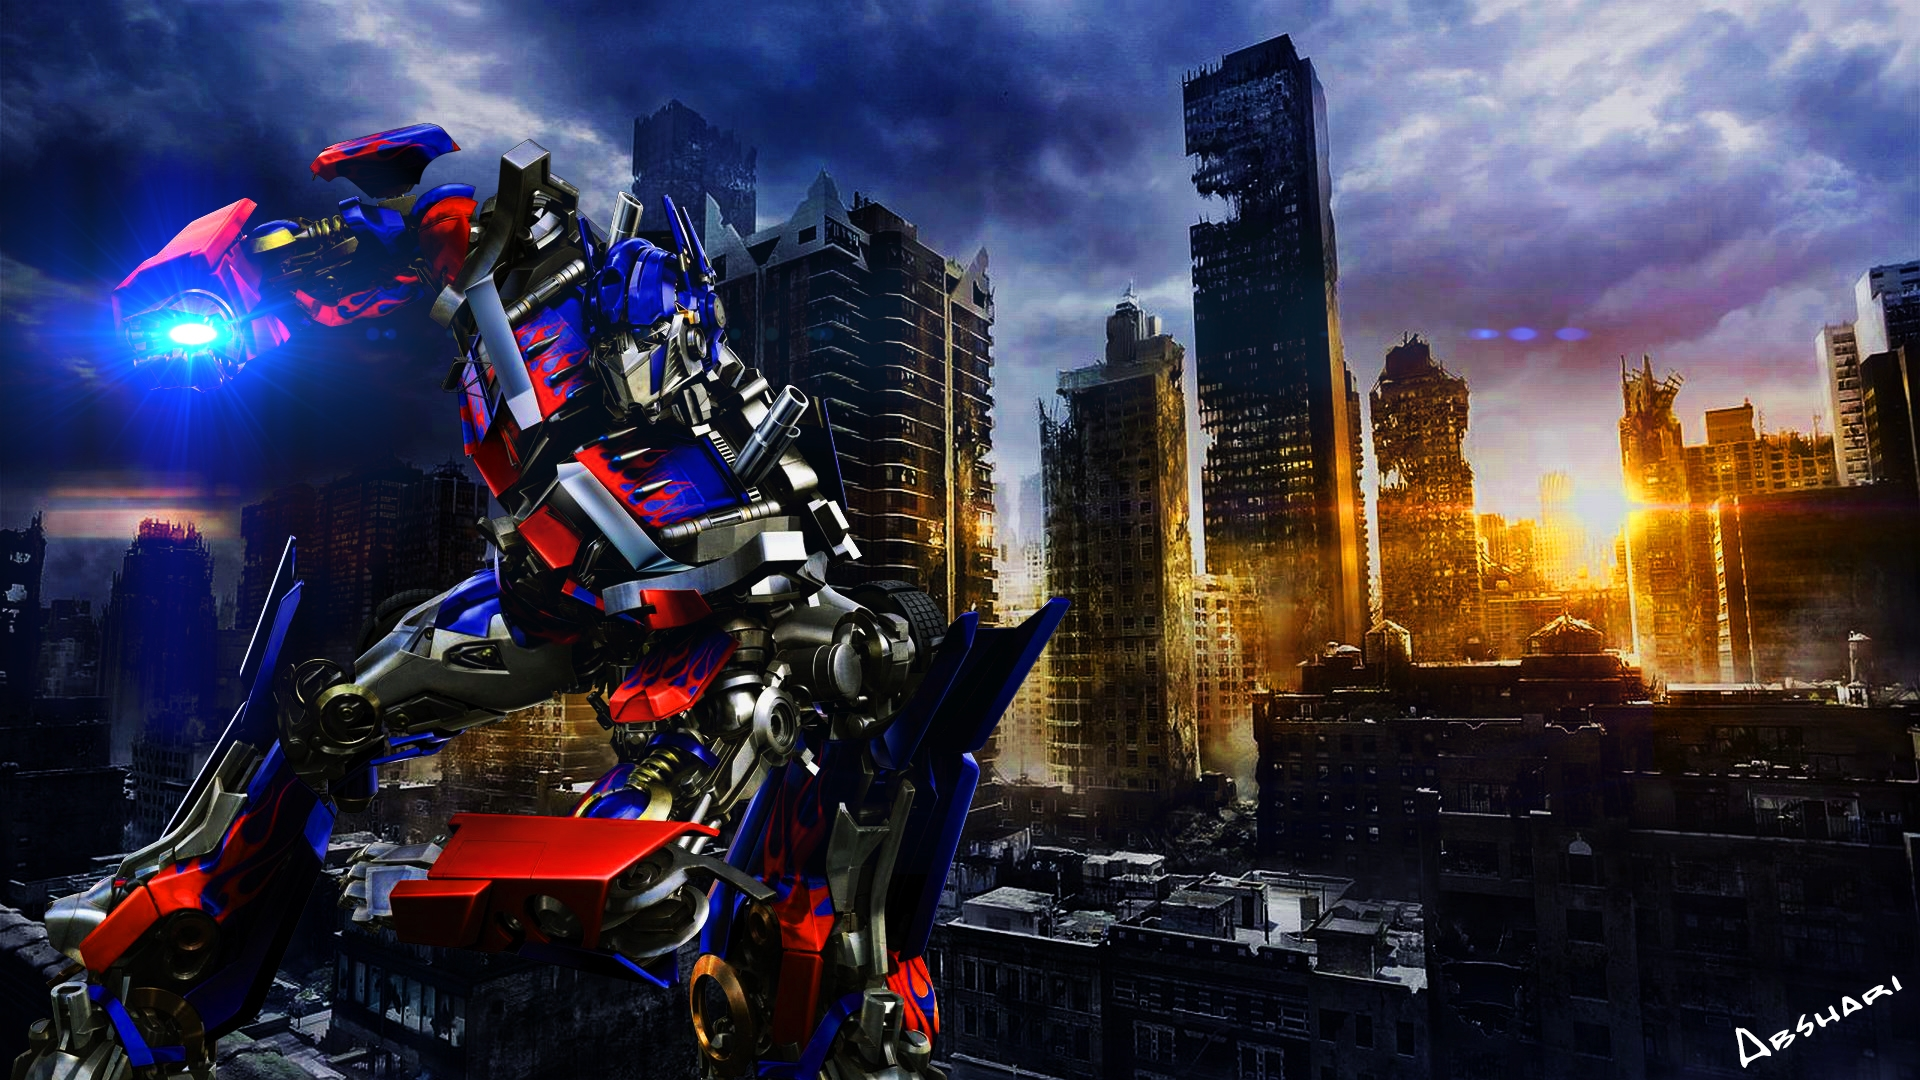 transformer optimus prime high quality photo